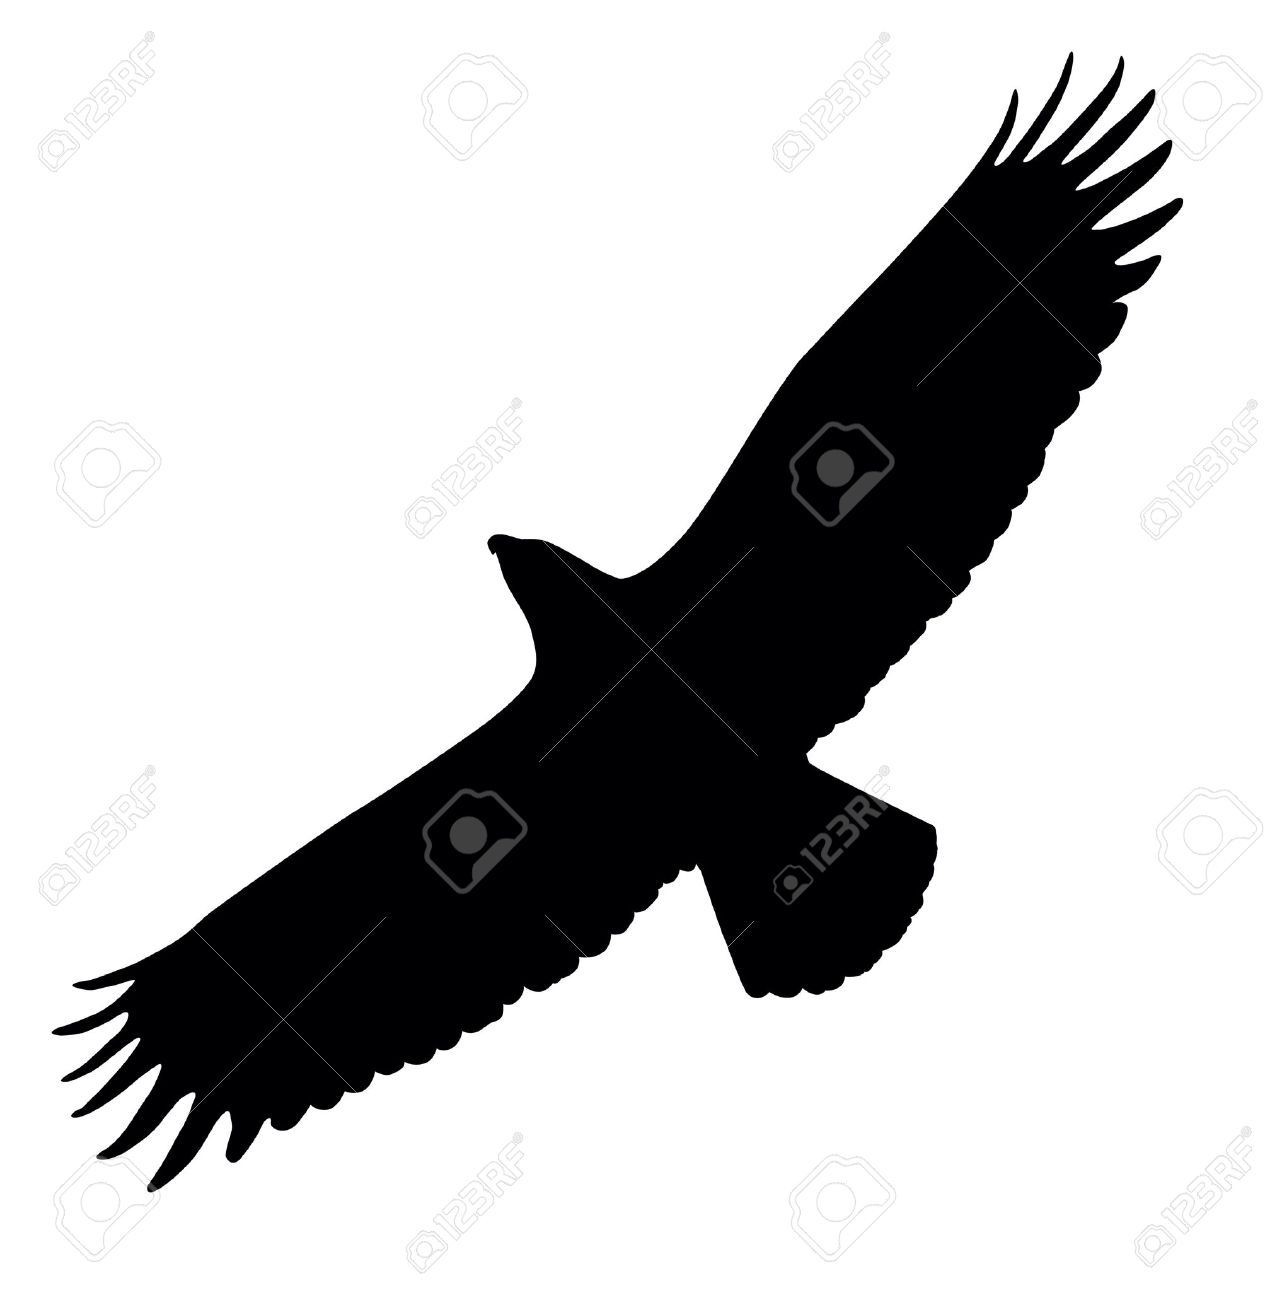 eagle silhouette tattoo at getdrawings com free for personal use rh getdrawings com Tribal Eagle Tattoo flying eagle silhouette tattoo